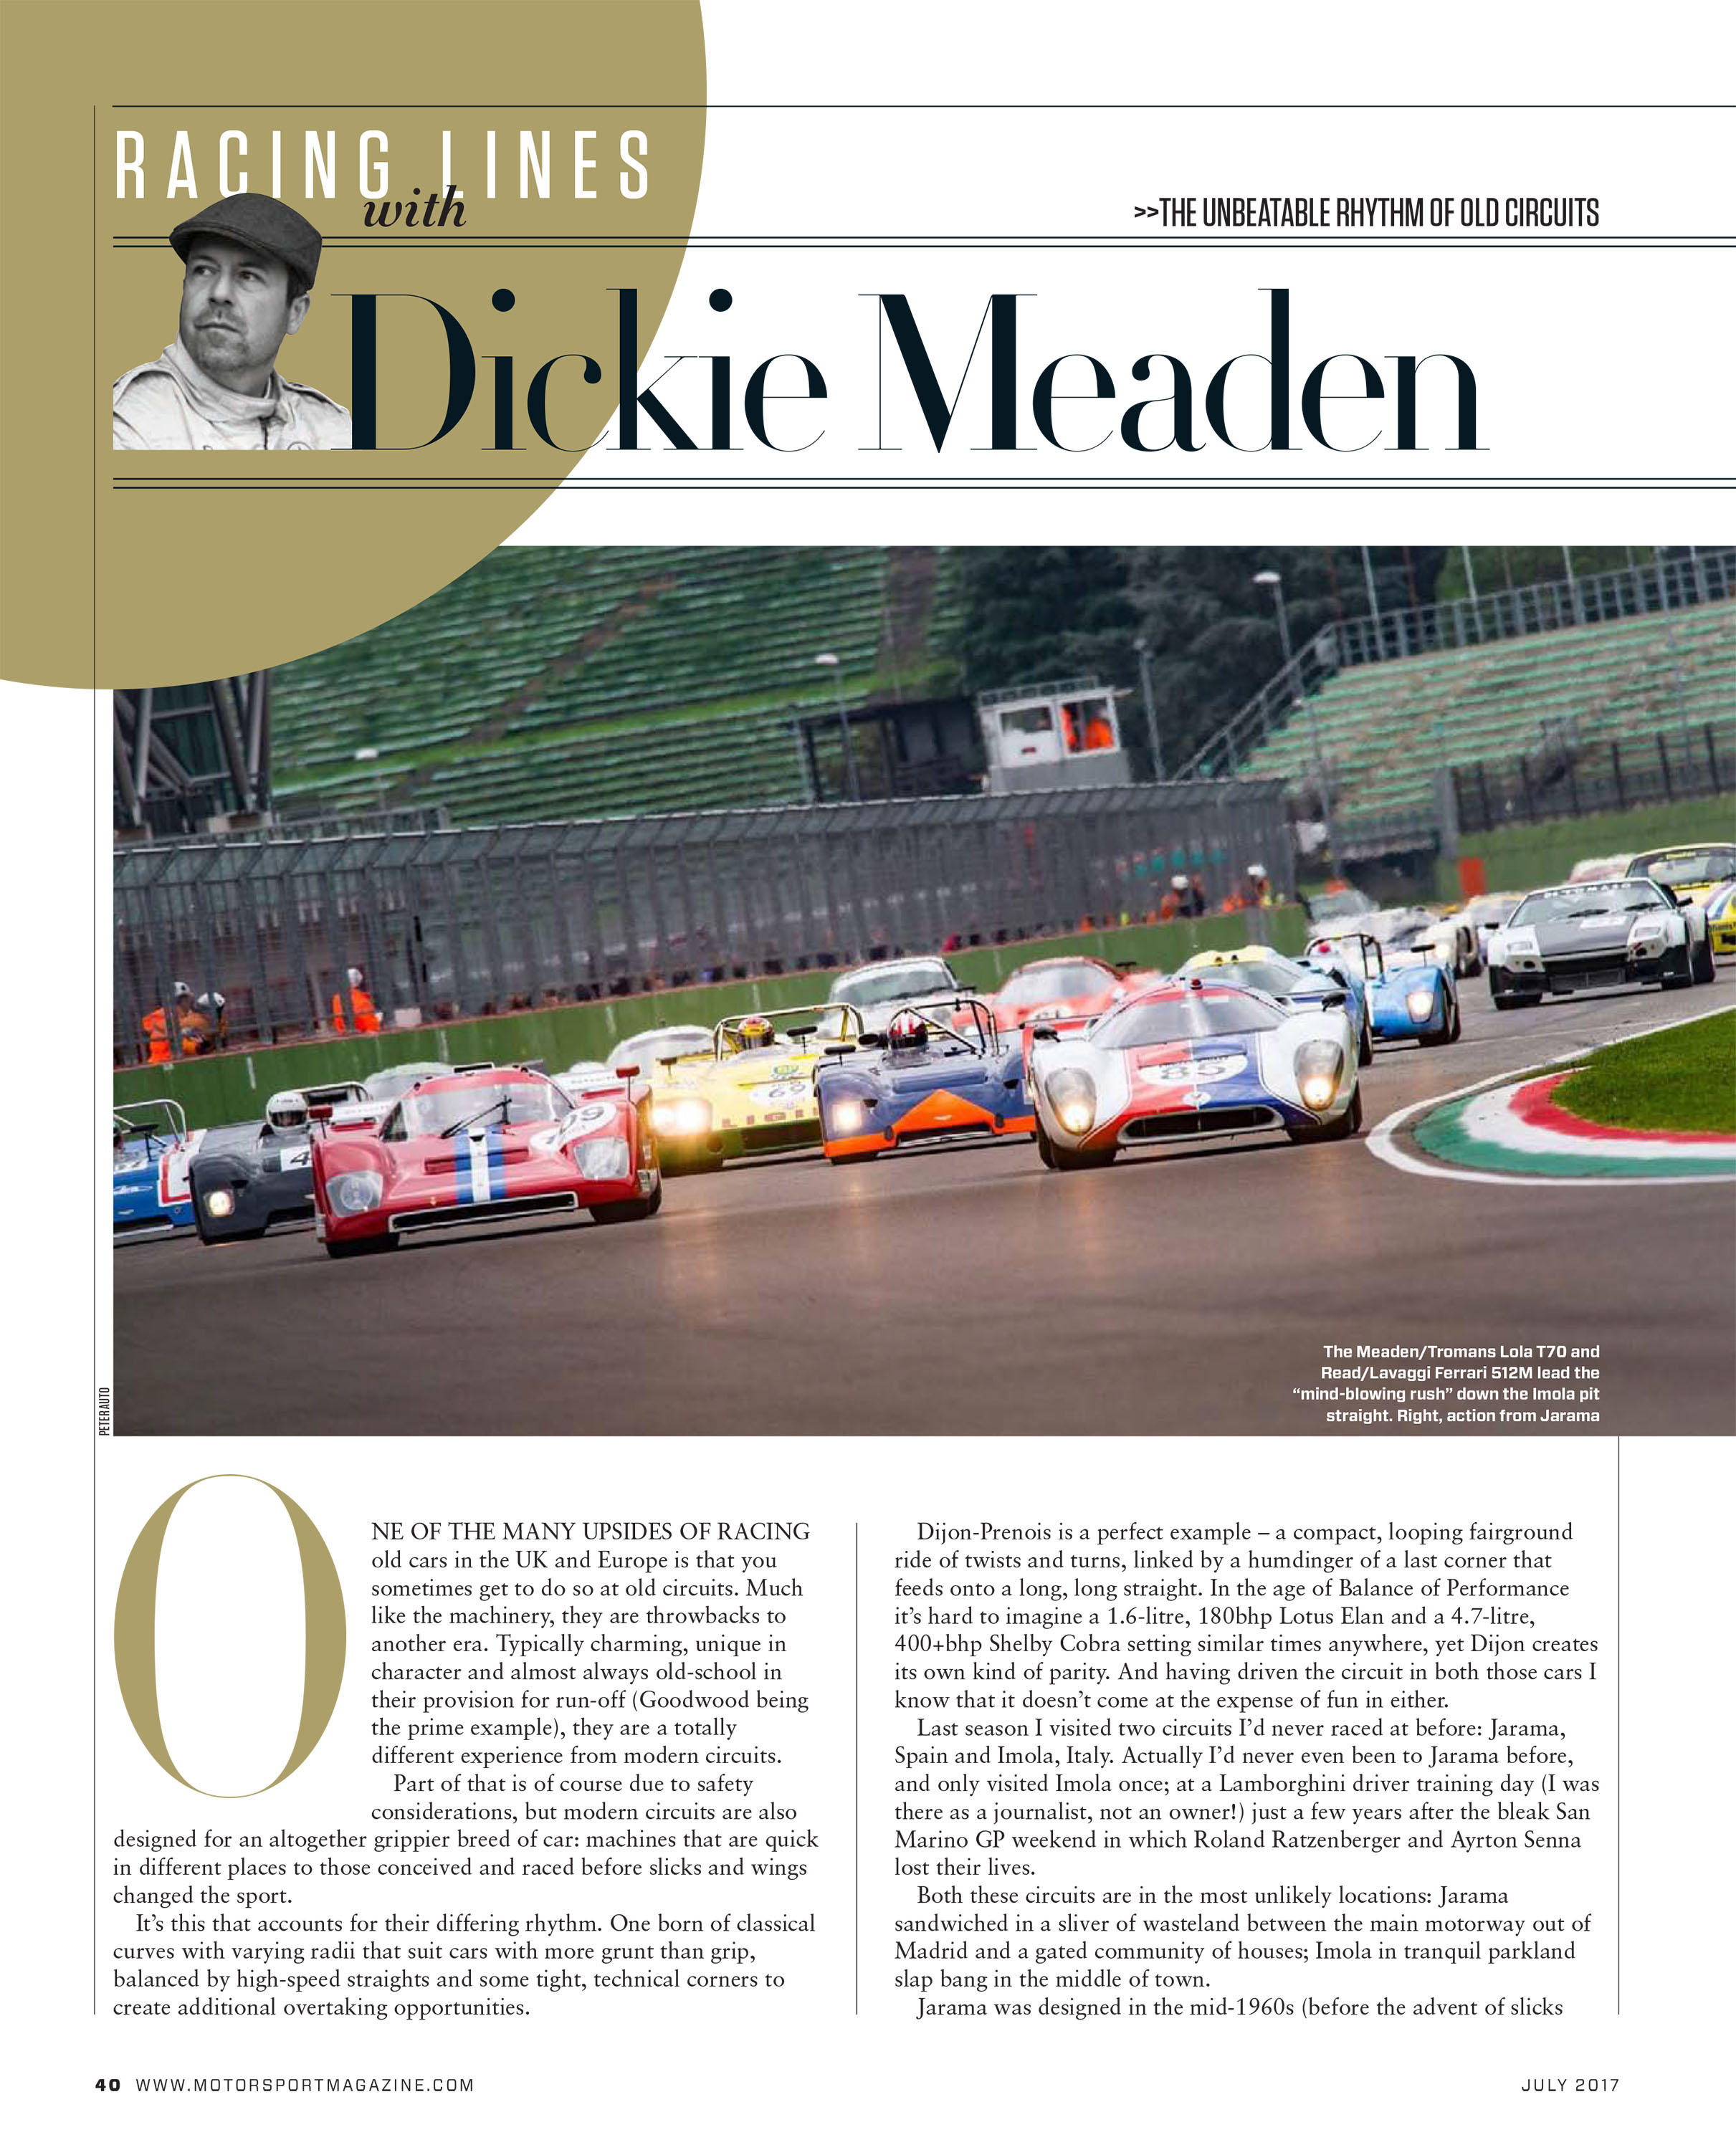 Racing Lines The Unbeatable Rhythm Of Old Circuits Motor Sport 42 What Happens When A Circuit Is On Complete Lights Magazine Archive